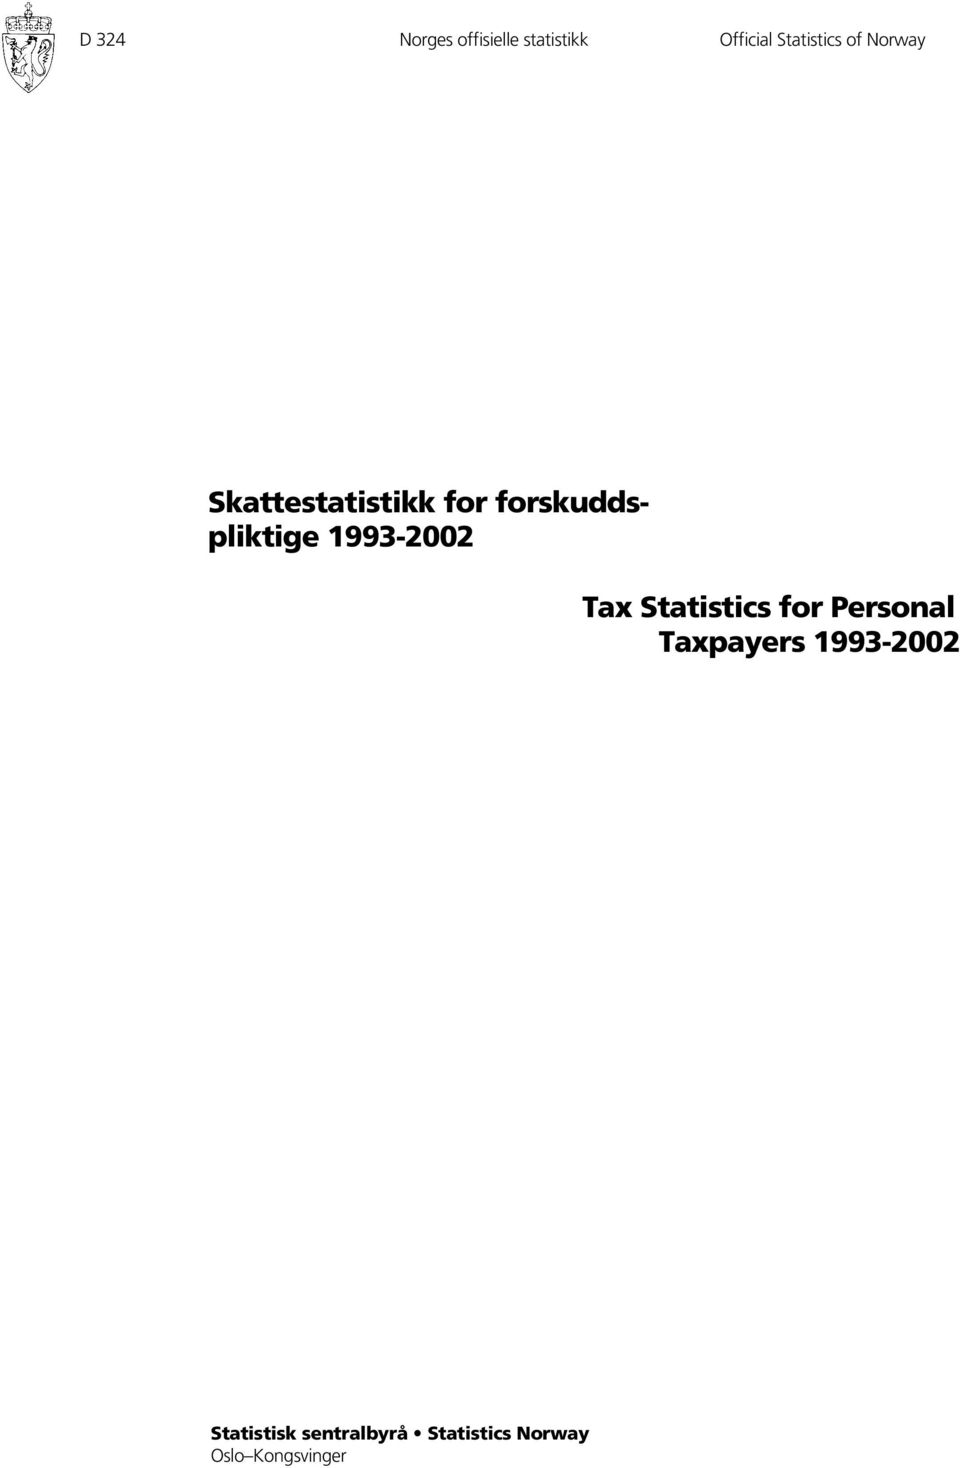 1993-2002 Tax Statistics for Personal Taxpayers